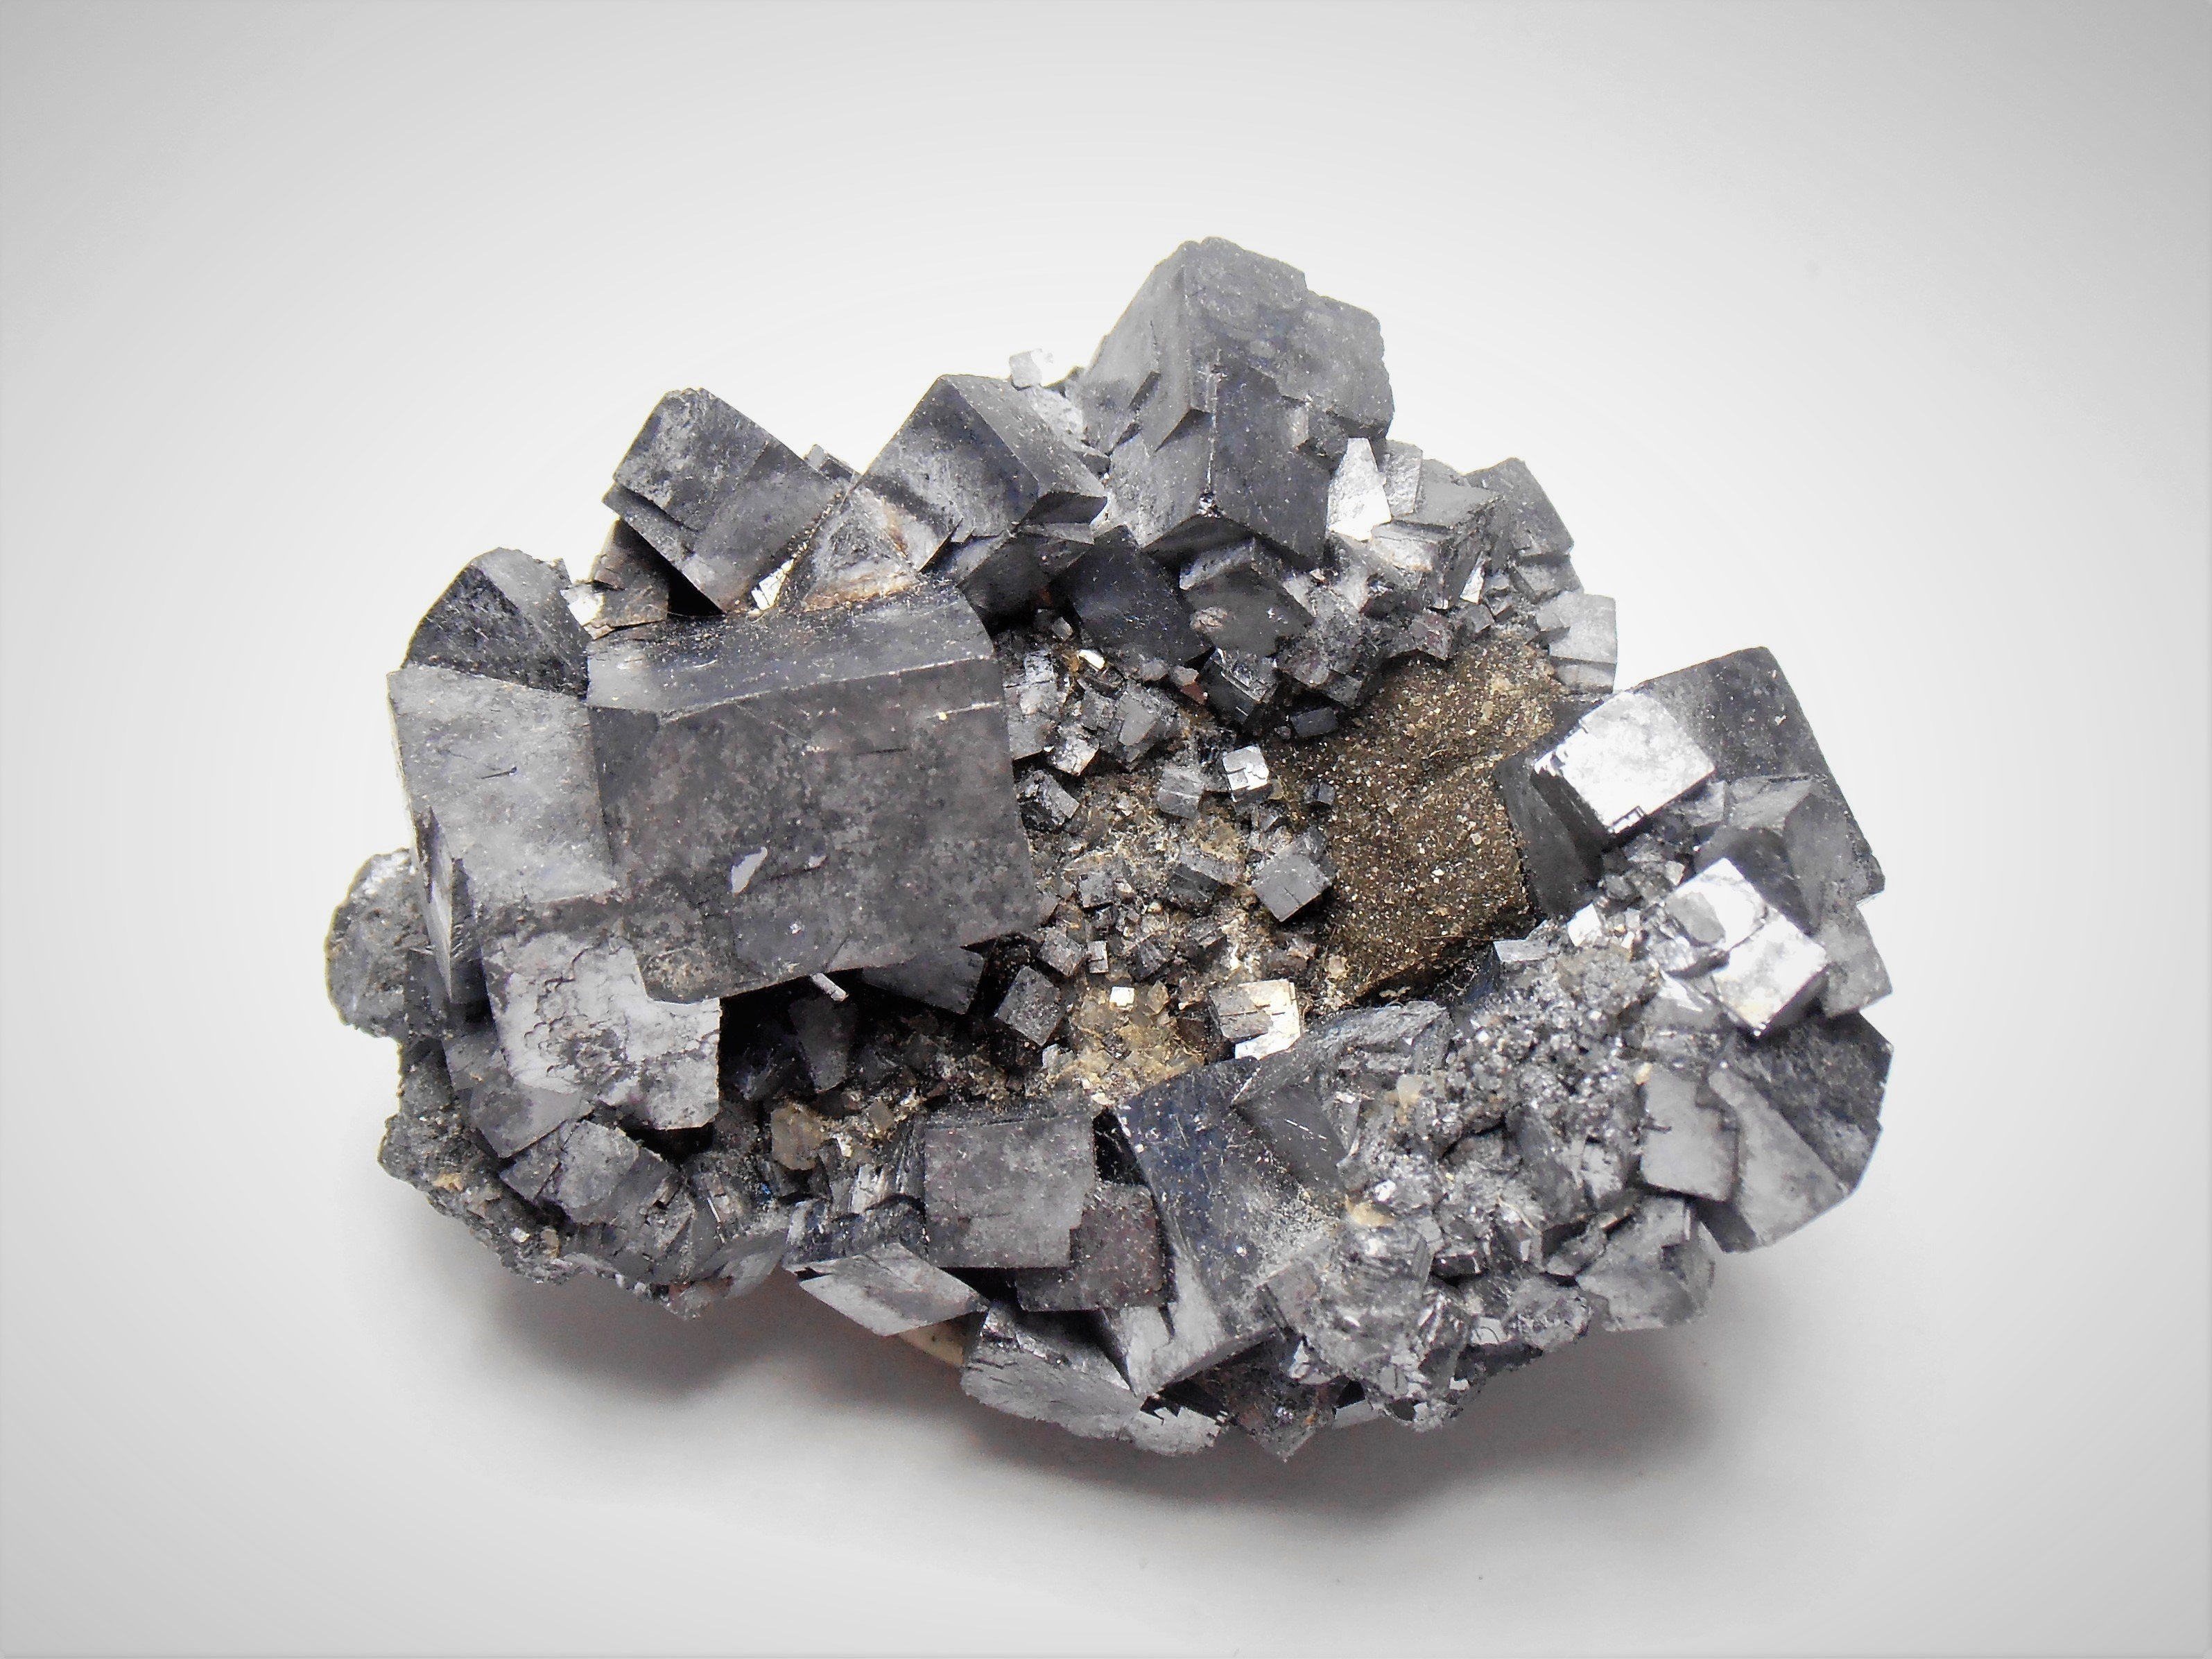 Galena - Cubic Crystals from the Sweetwater Mine, Missouri